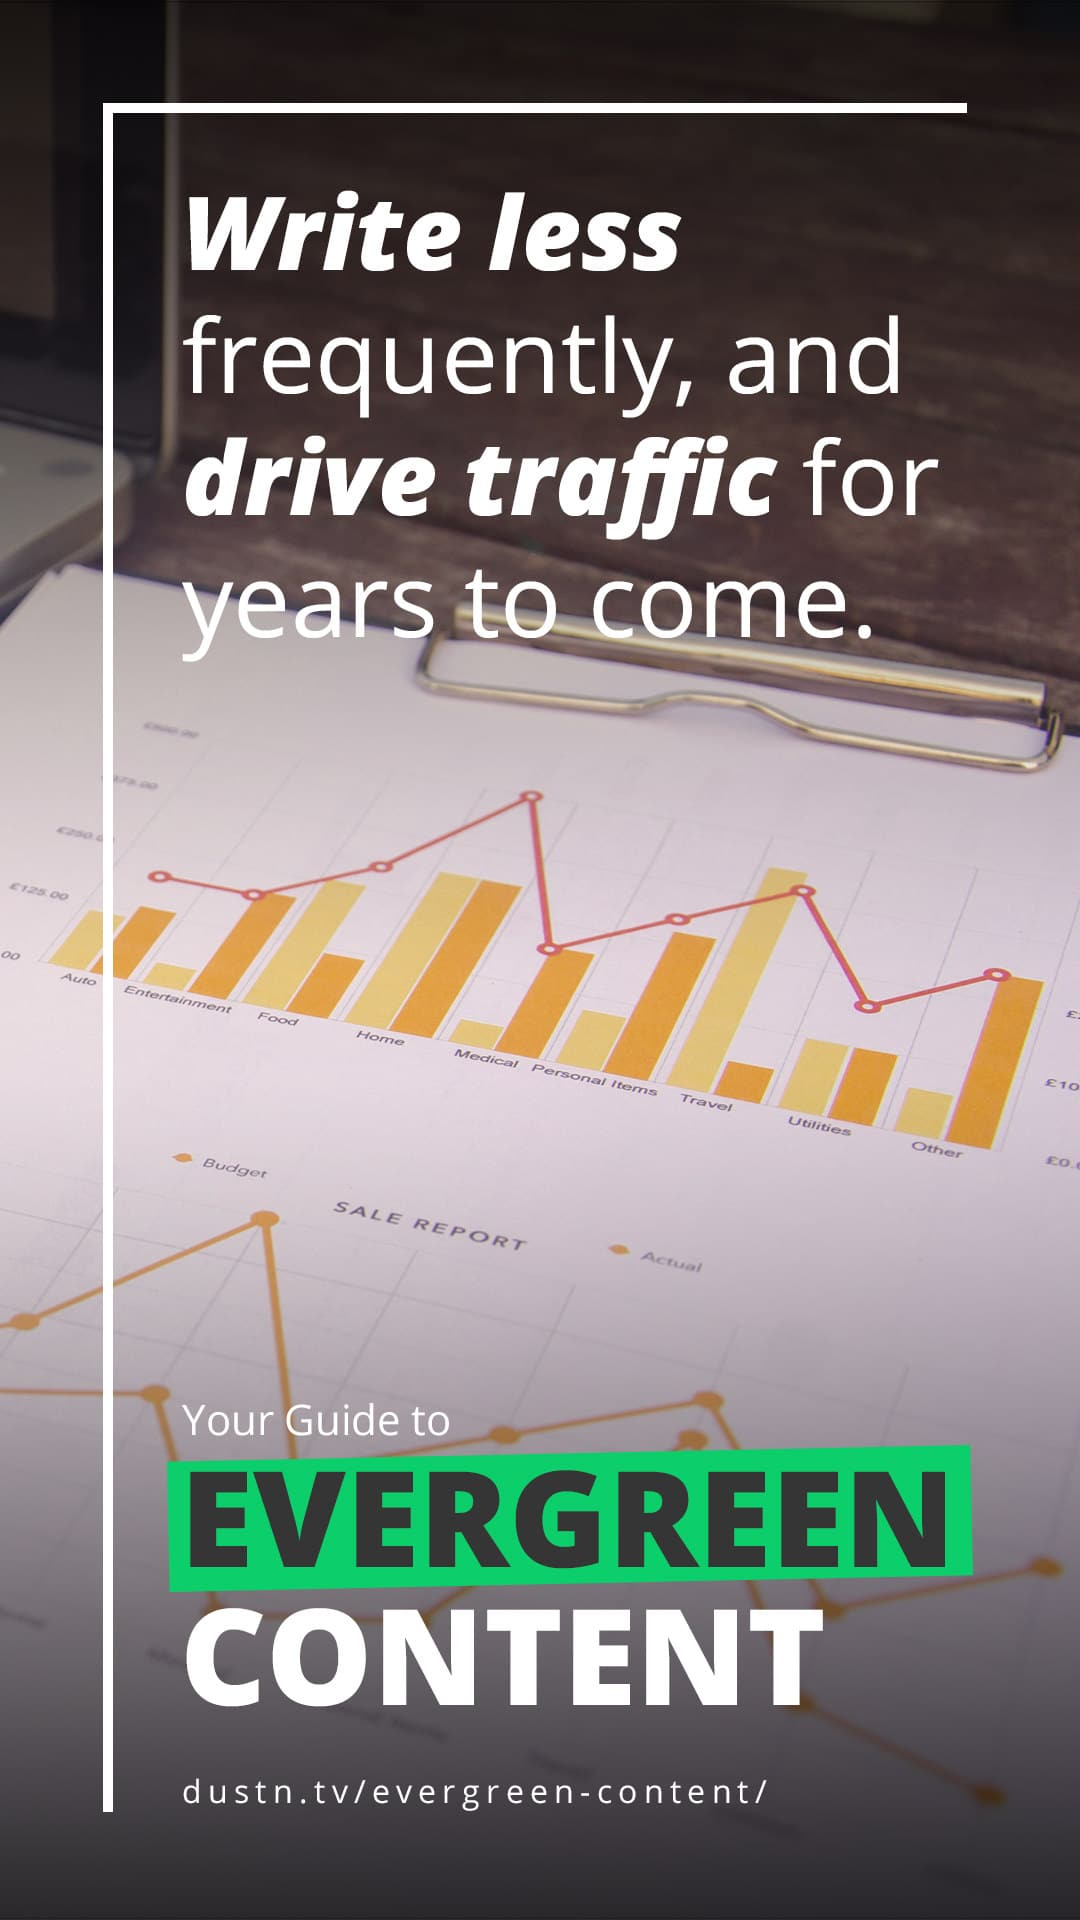 How to Get More Traffic Without More Writing (Think Evergreen)